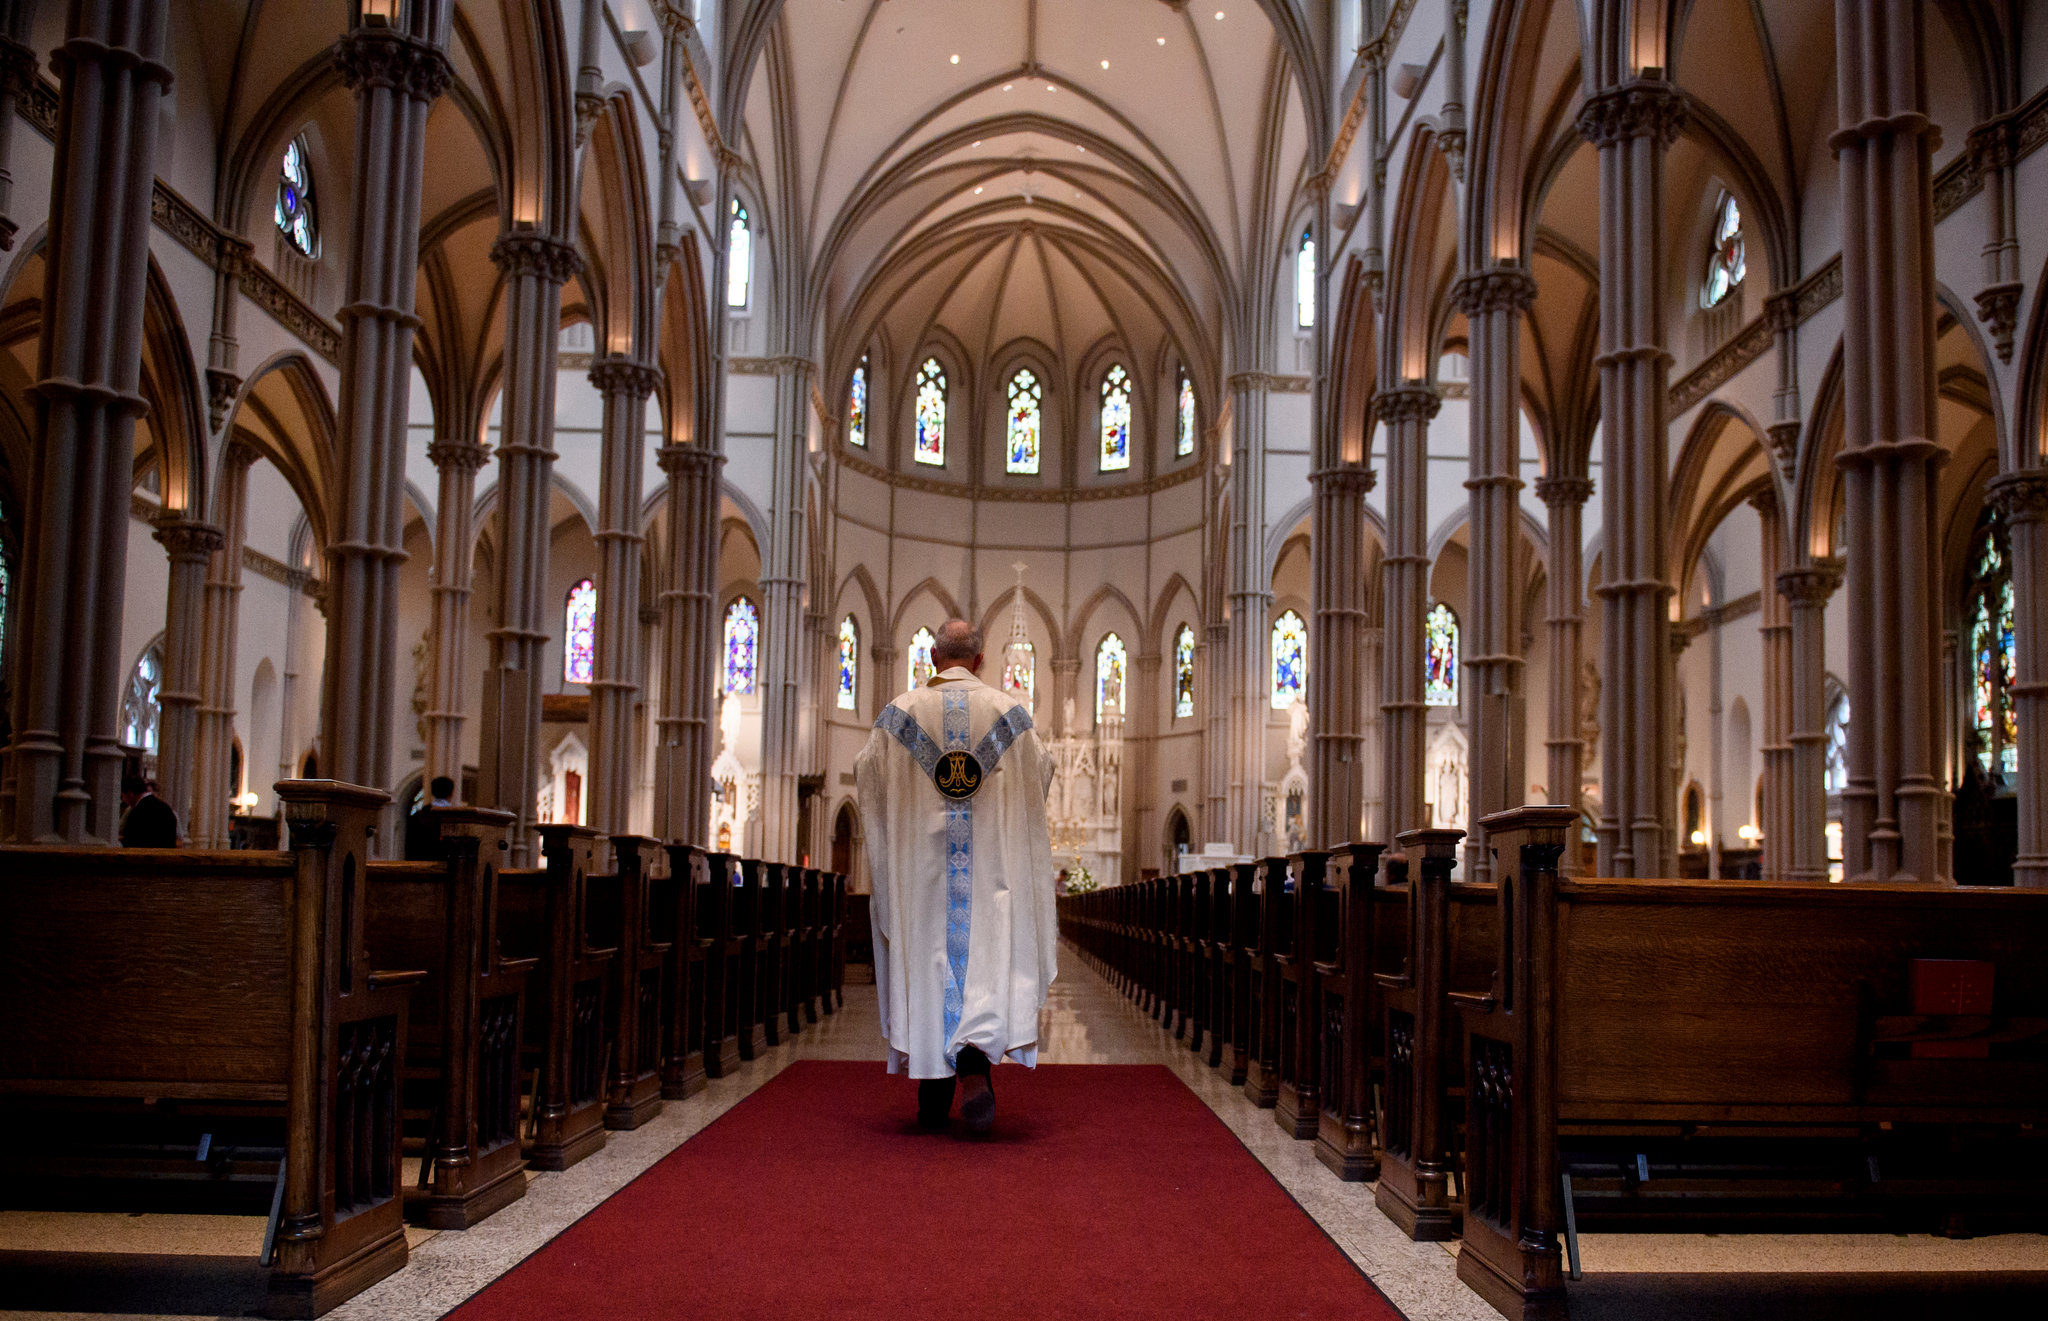 - Let There Be Light, in ChurchMarci Hamilton | August 29, 2018The Roman Catholic clergy sex abuse crisis blankets the globe in darkness. We are at a tipping point — or at least we ought to be.The unmasking and resignation of the former archbishop of Washington, Cardinal Theodore McCarrick, placed alongside the recent release of an exhaustive grand jury report in Pennsylvania that describes in withering detail more than 1,000 grotesque abuses, has reinforced the growing public sentiment in favor of eliminating the statutes of limitations for child sex abuse. Under current law, a vast majority of victims will receive no justice because of an arbitrary procedural deadline.